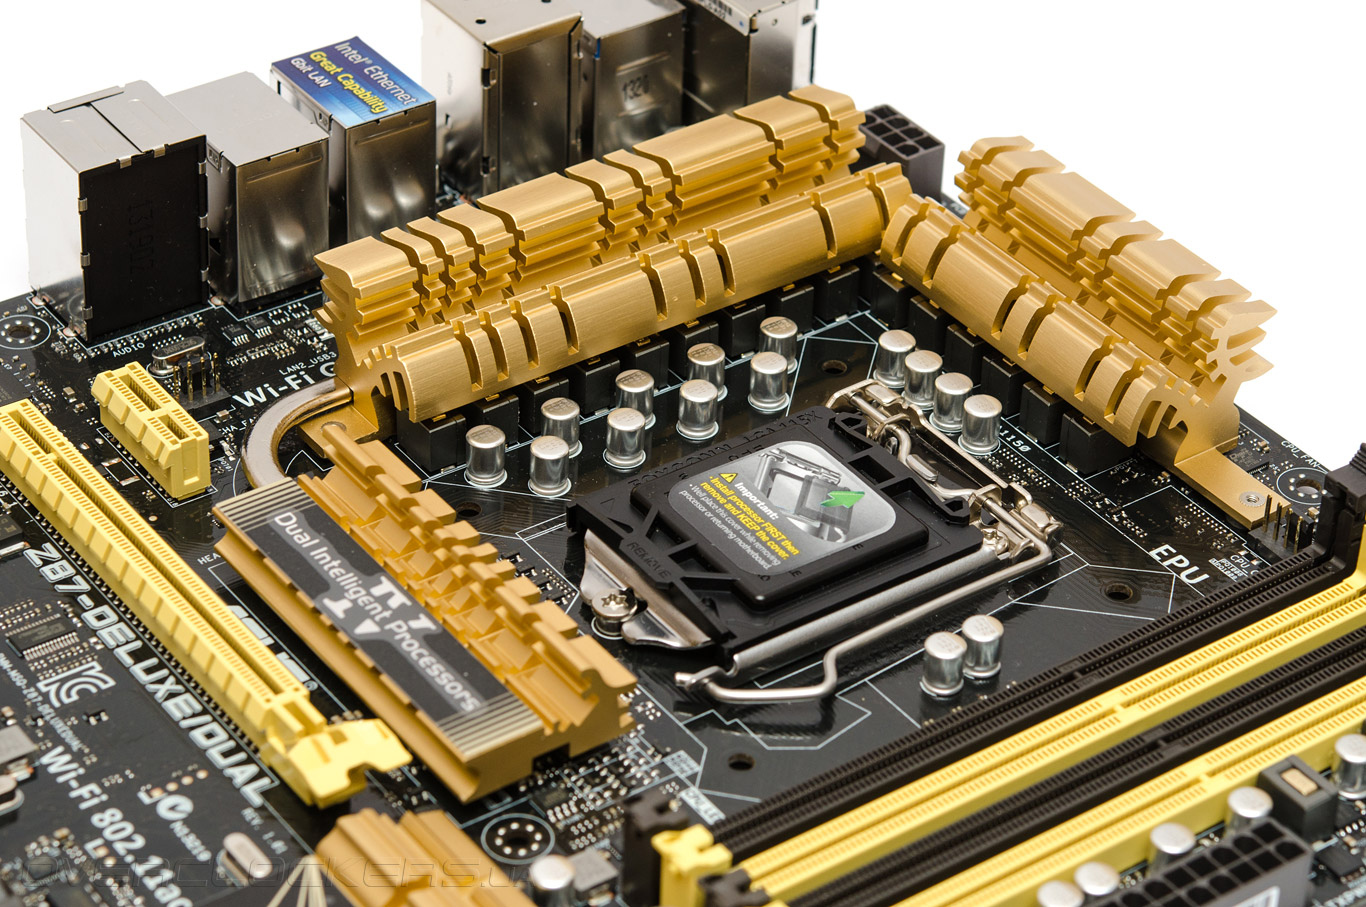 ASUS Z87-DELUXE/DUAL MOTHERBOARD DRIVER FOR WINDOWS MAC